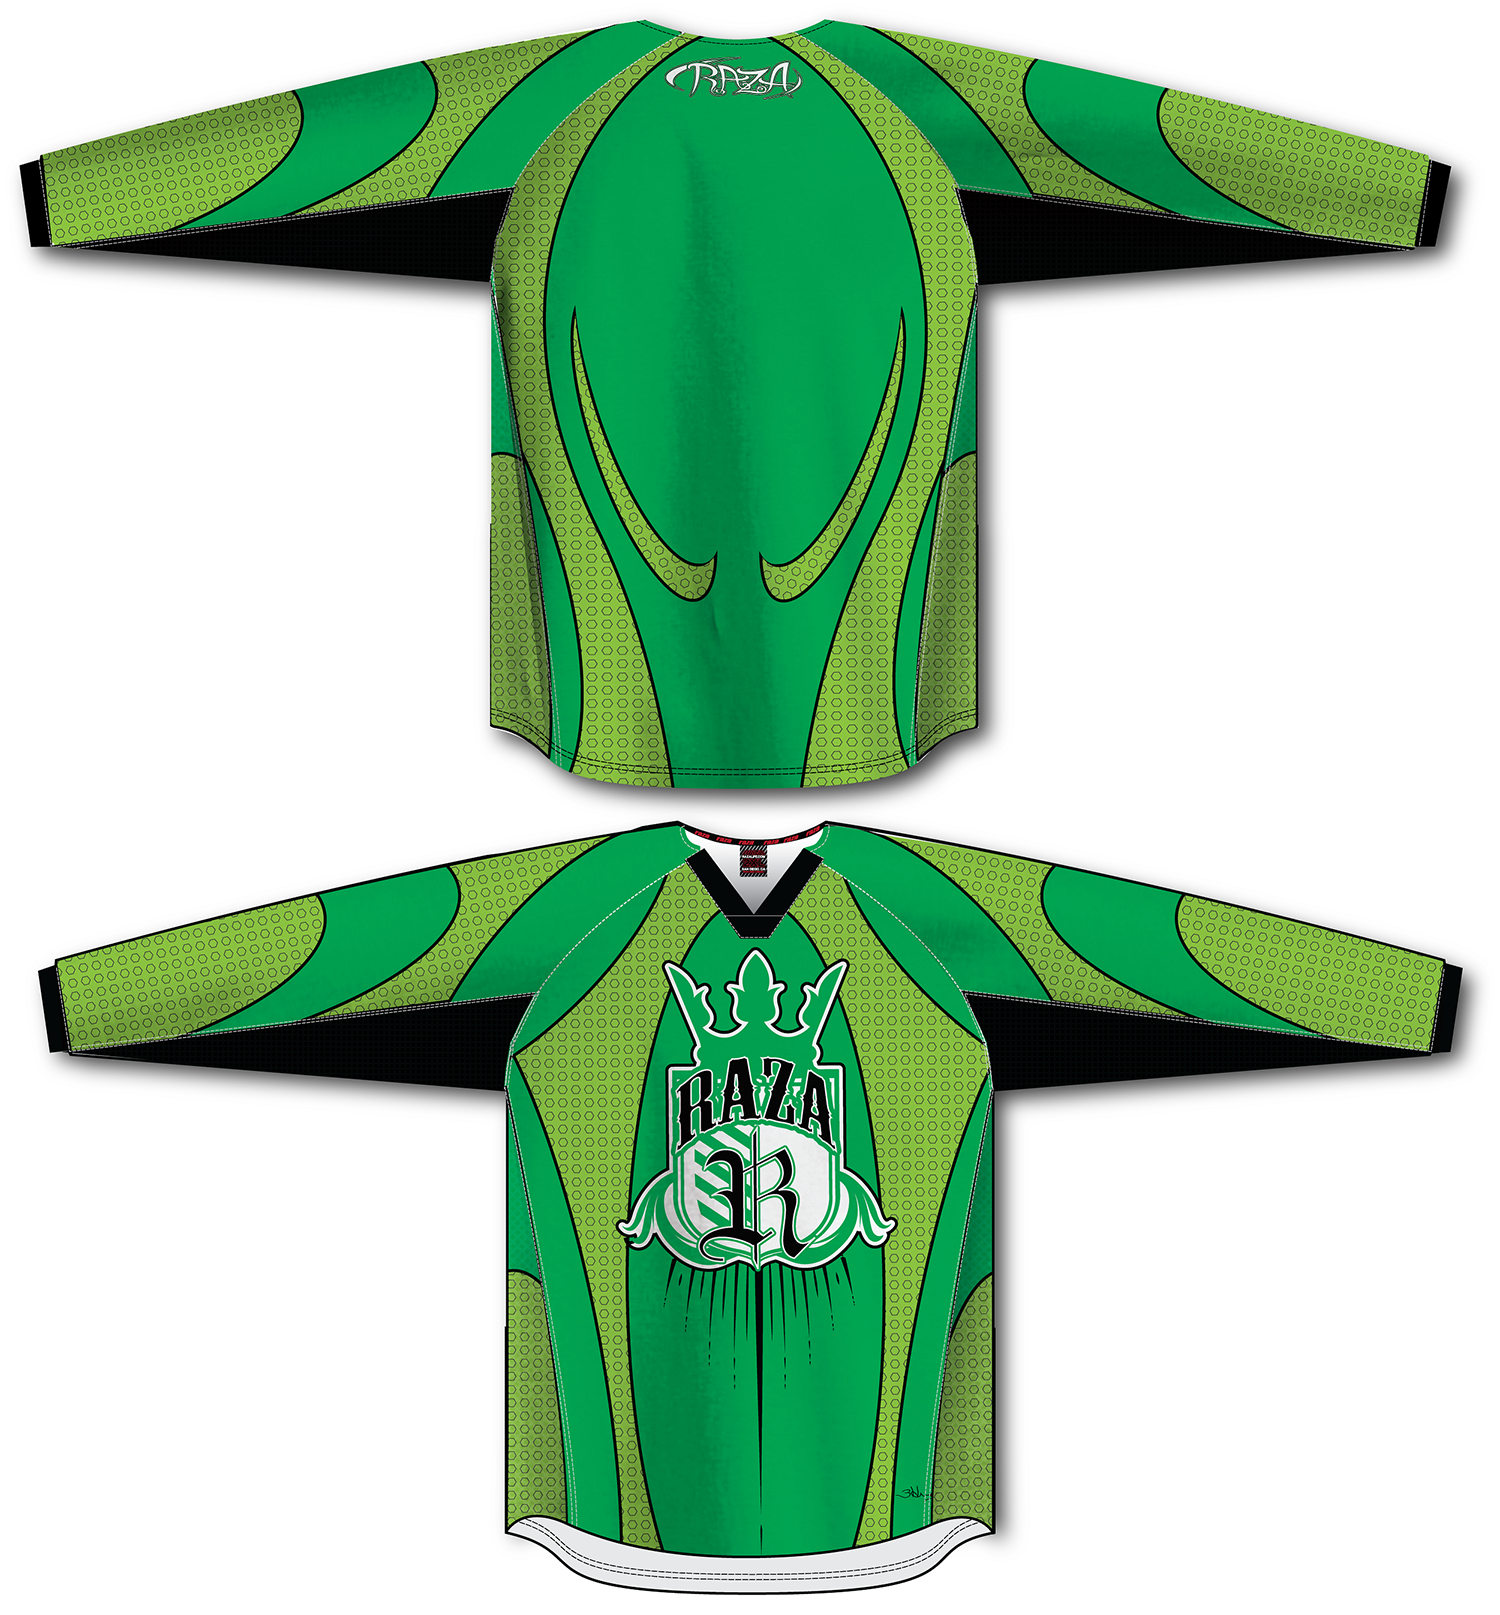 Factory Green TM2 Jersey